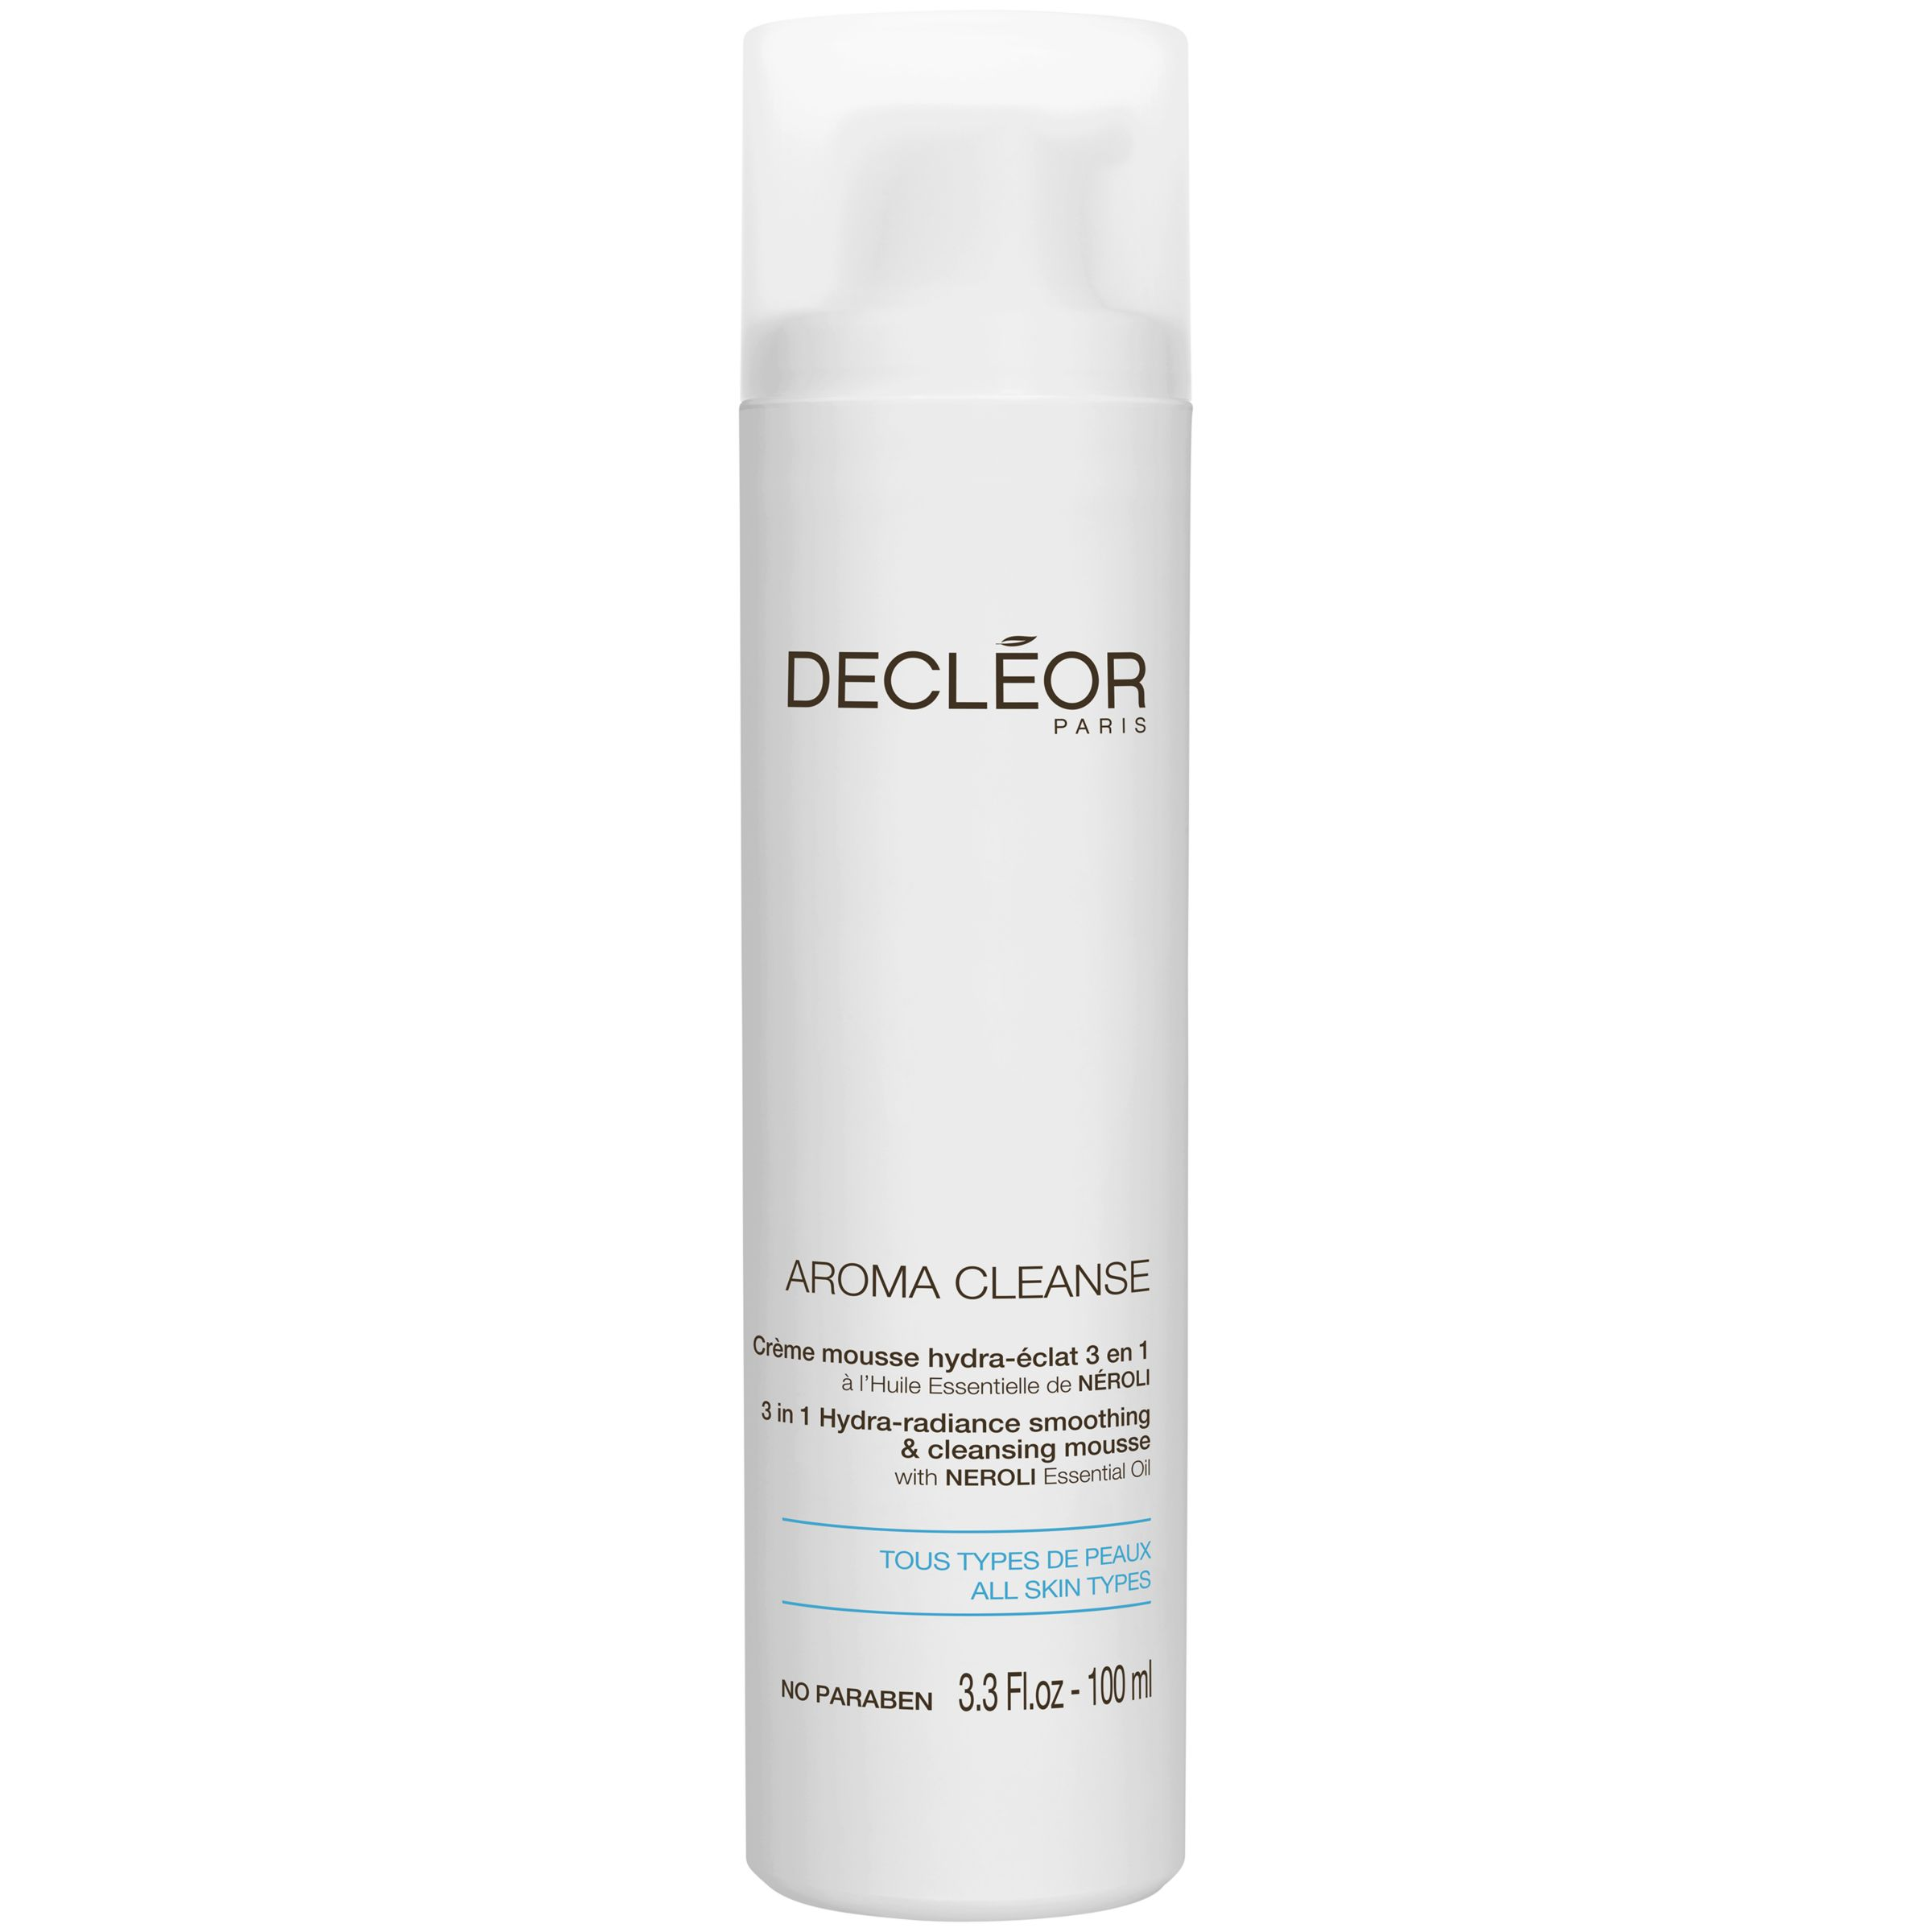 DECLÉOR AROMA CLEANSE 3 in 1 Hydra-radiance smoothing & cleansing mousse with NEROLI Essential Oil 100ml